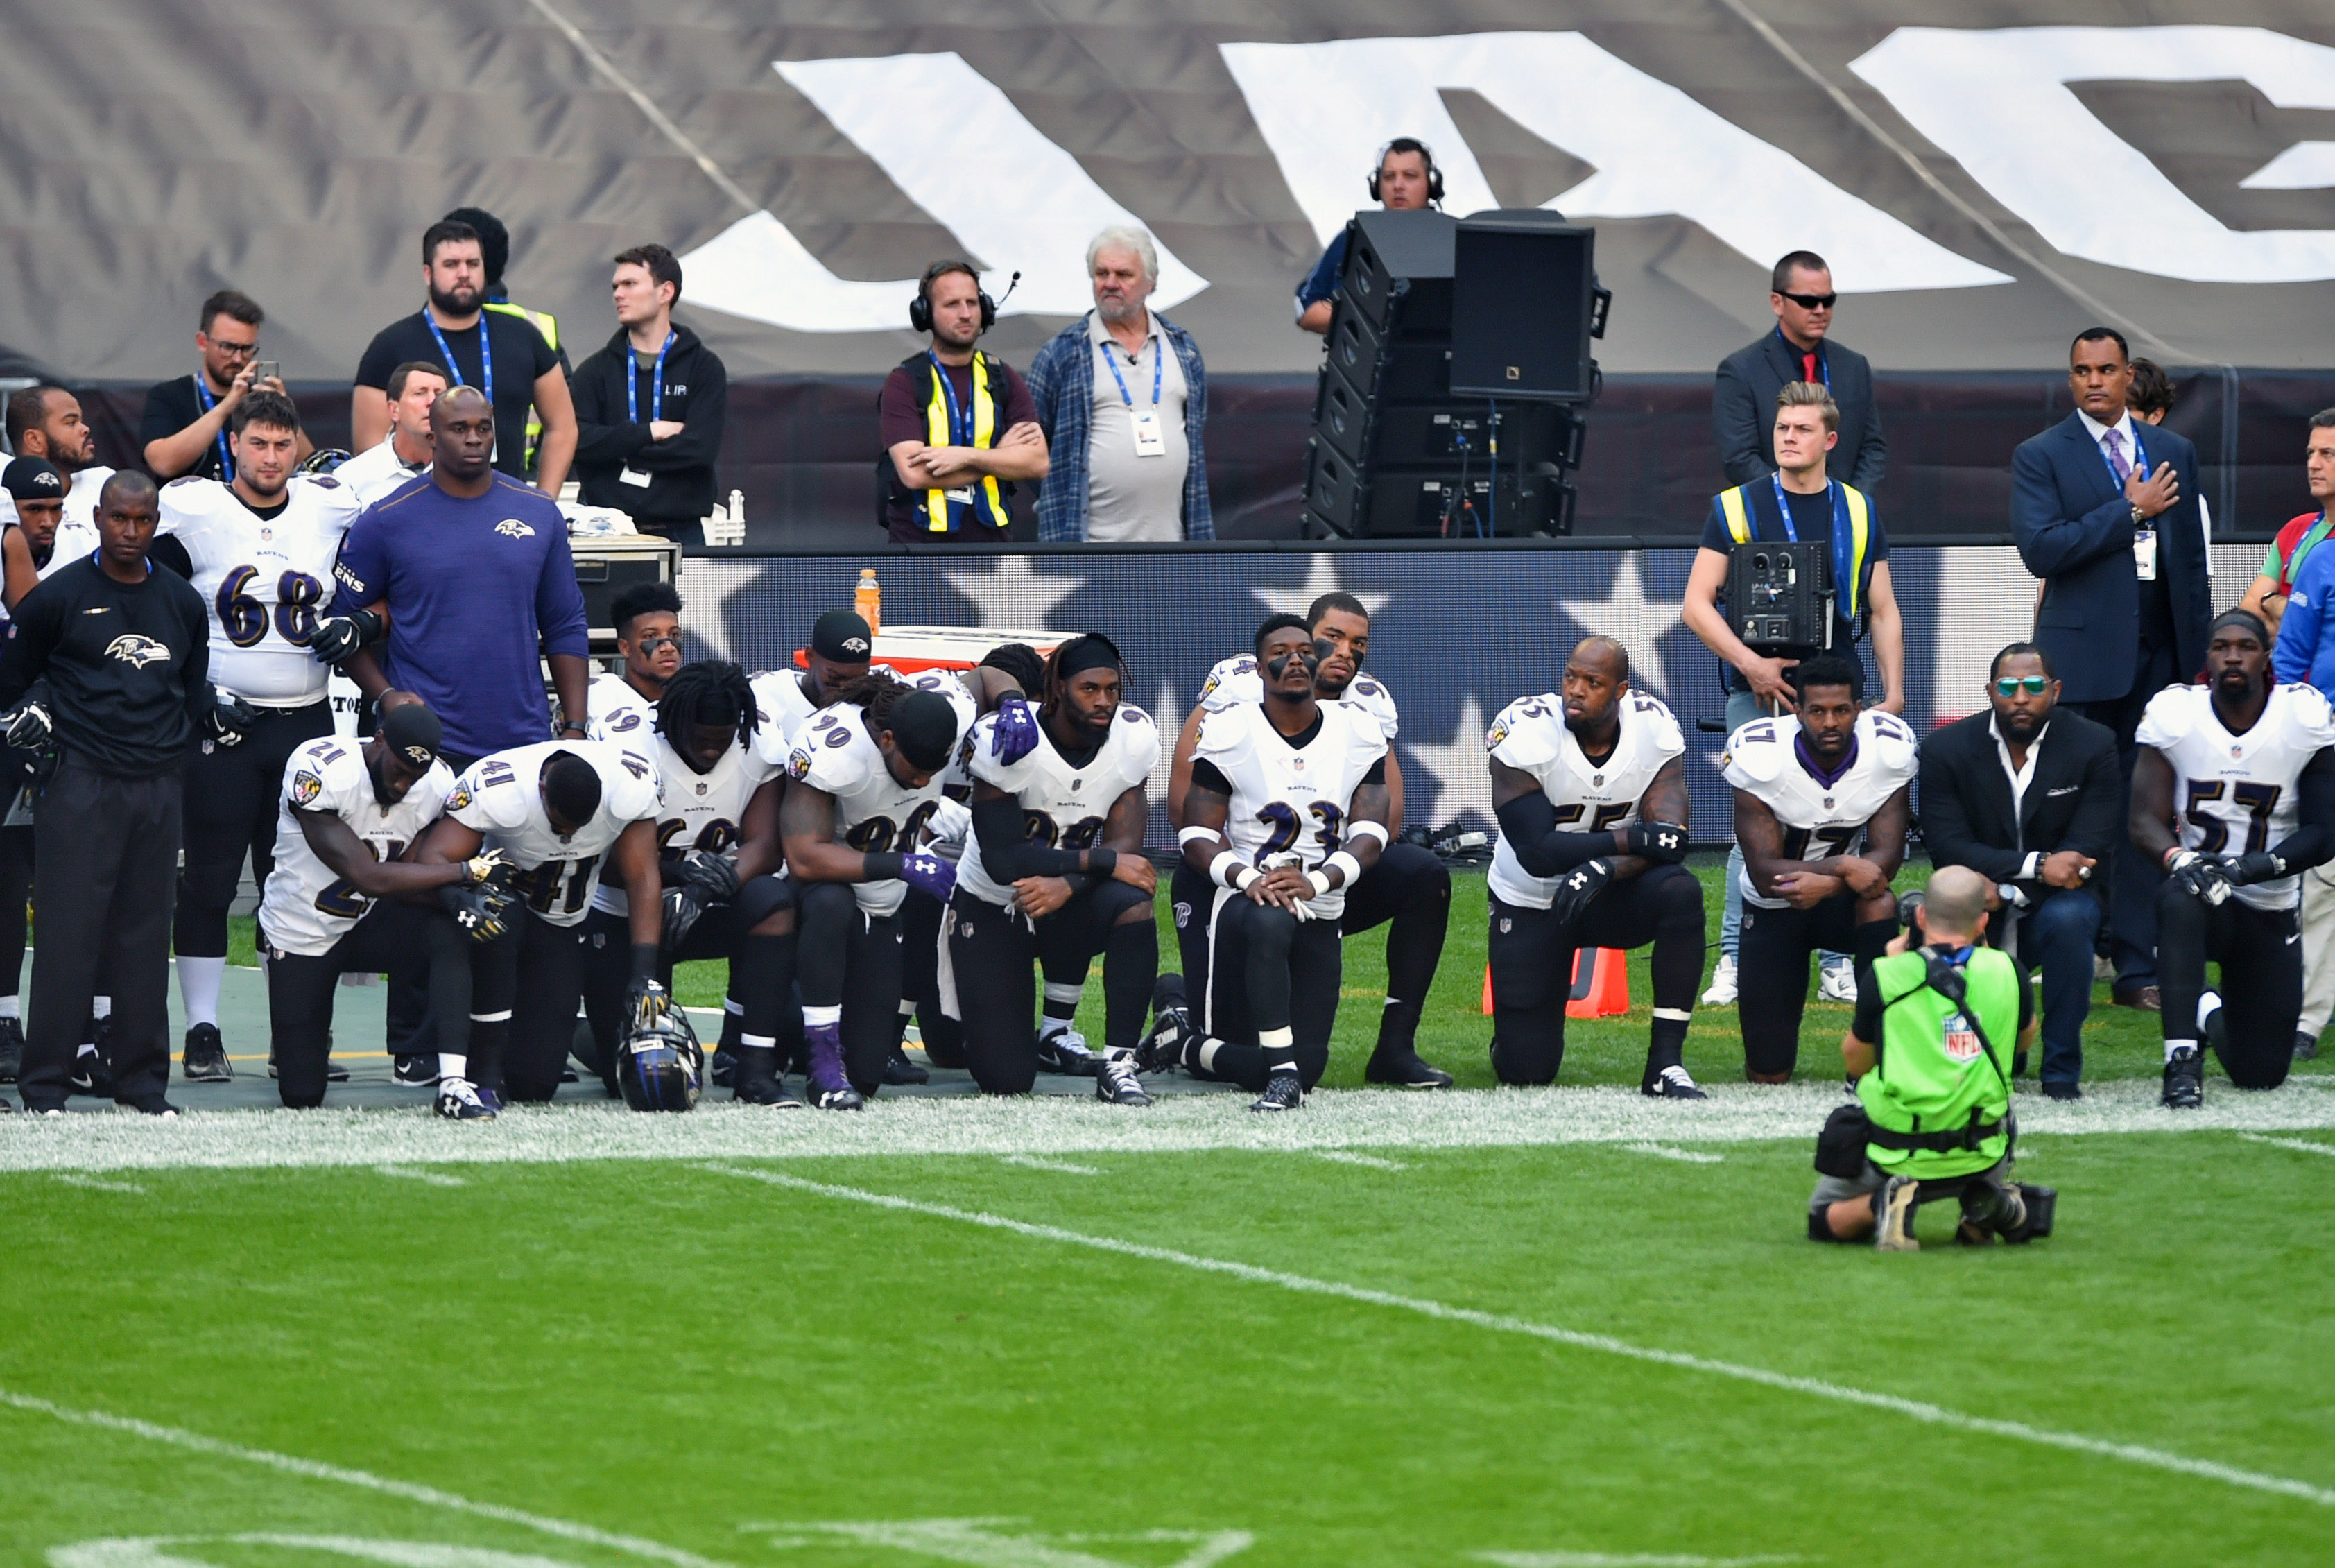 npr.org About two dozen players kneel for national anthem in London  rssfeeds.wusa9.com ... 569e39cf8